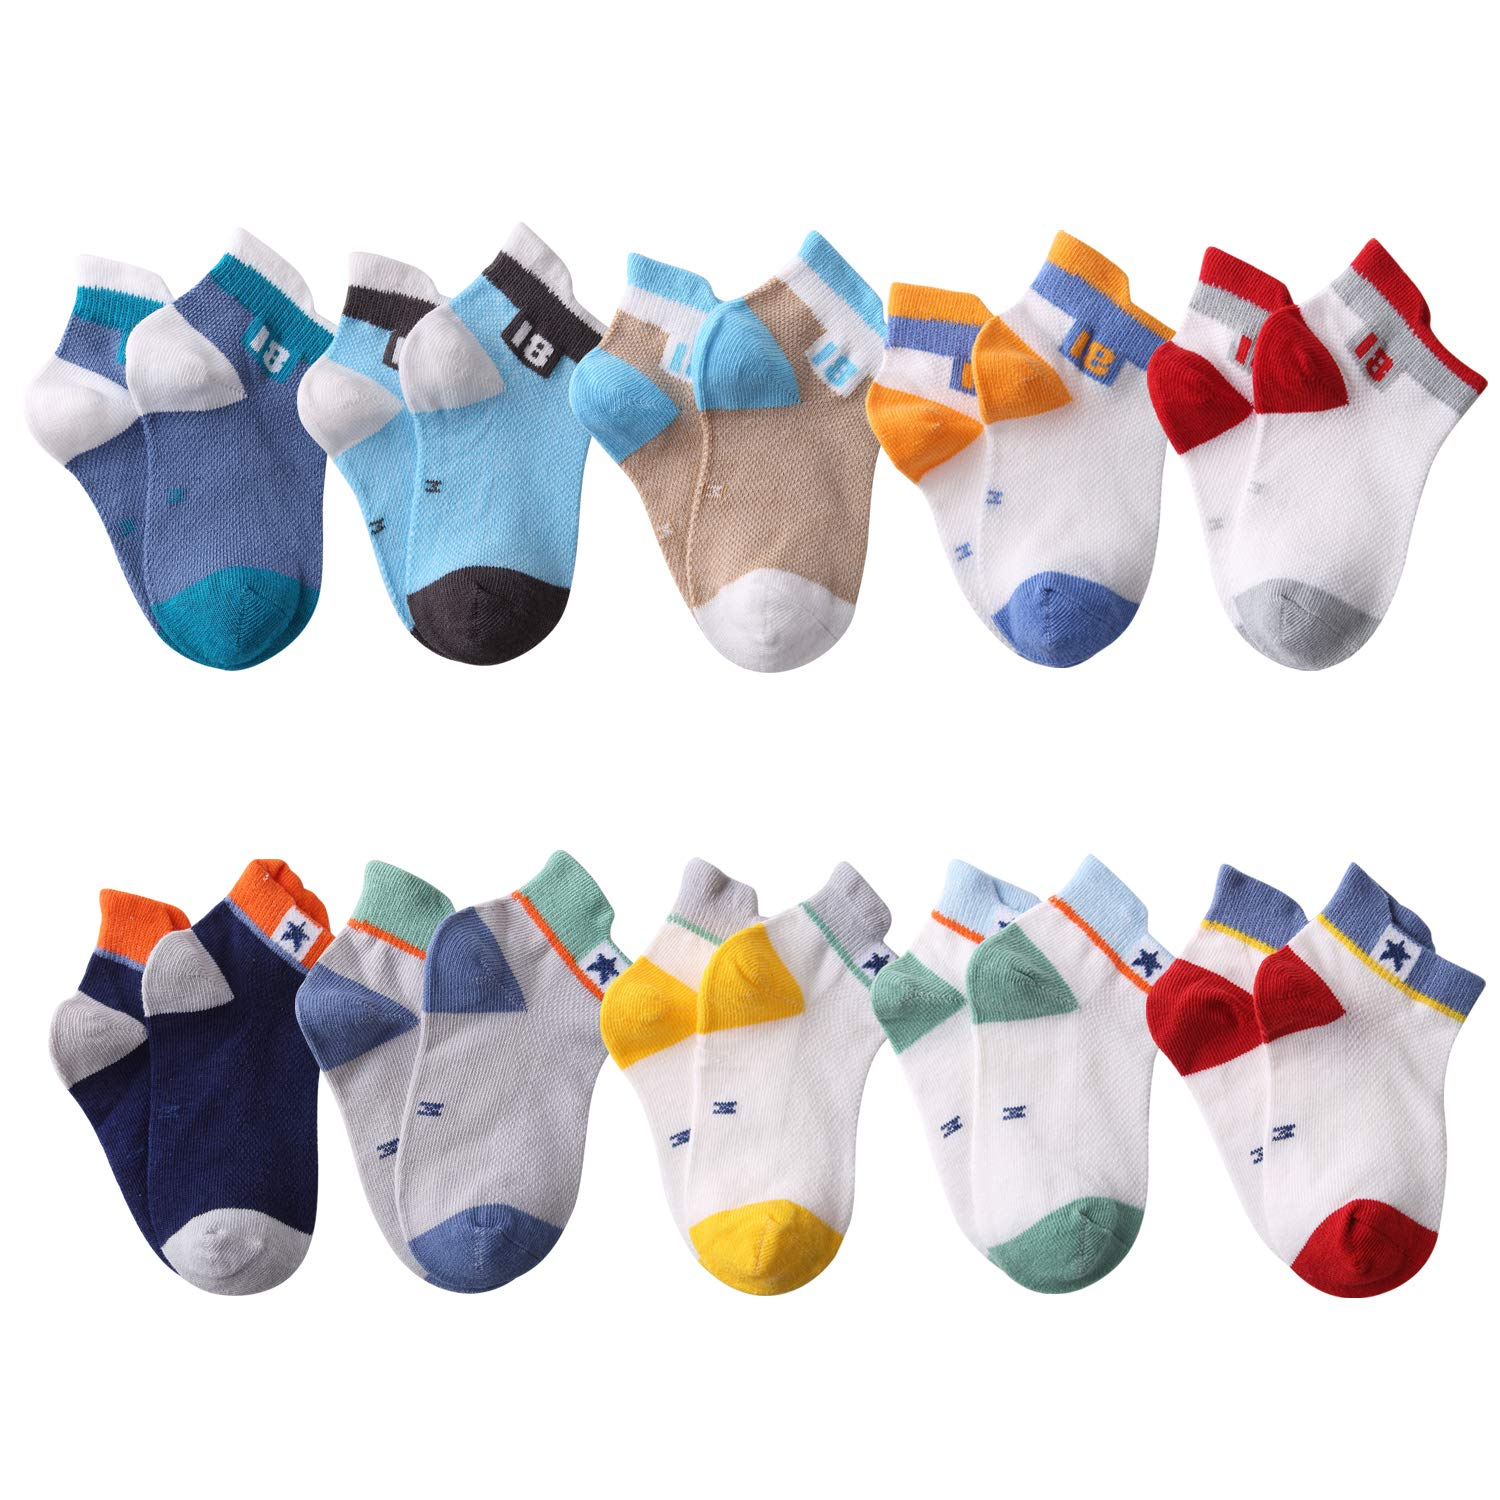 Fenhant 10 Pairs Socks Kids Boys Grils Cute Novelty Colorful Cotton Crew Socks